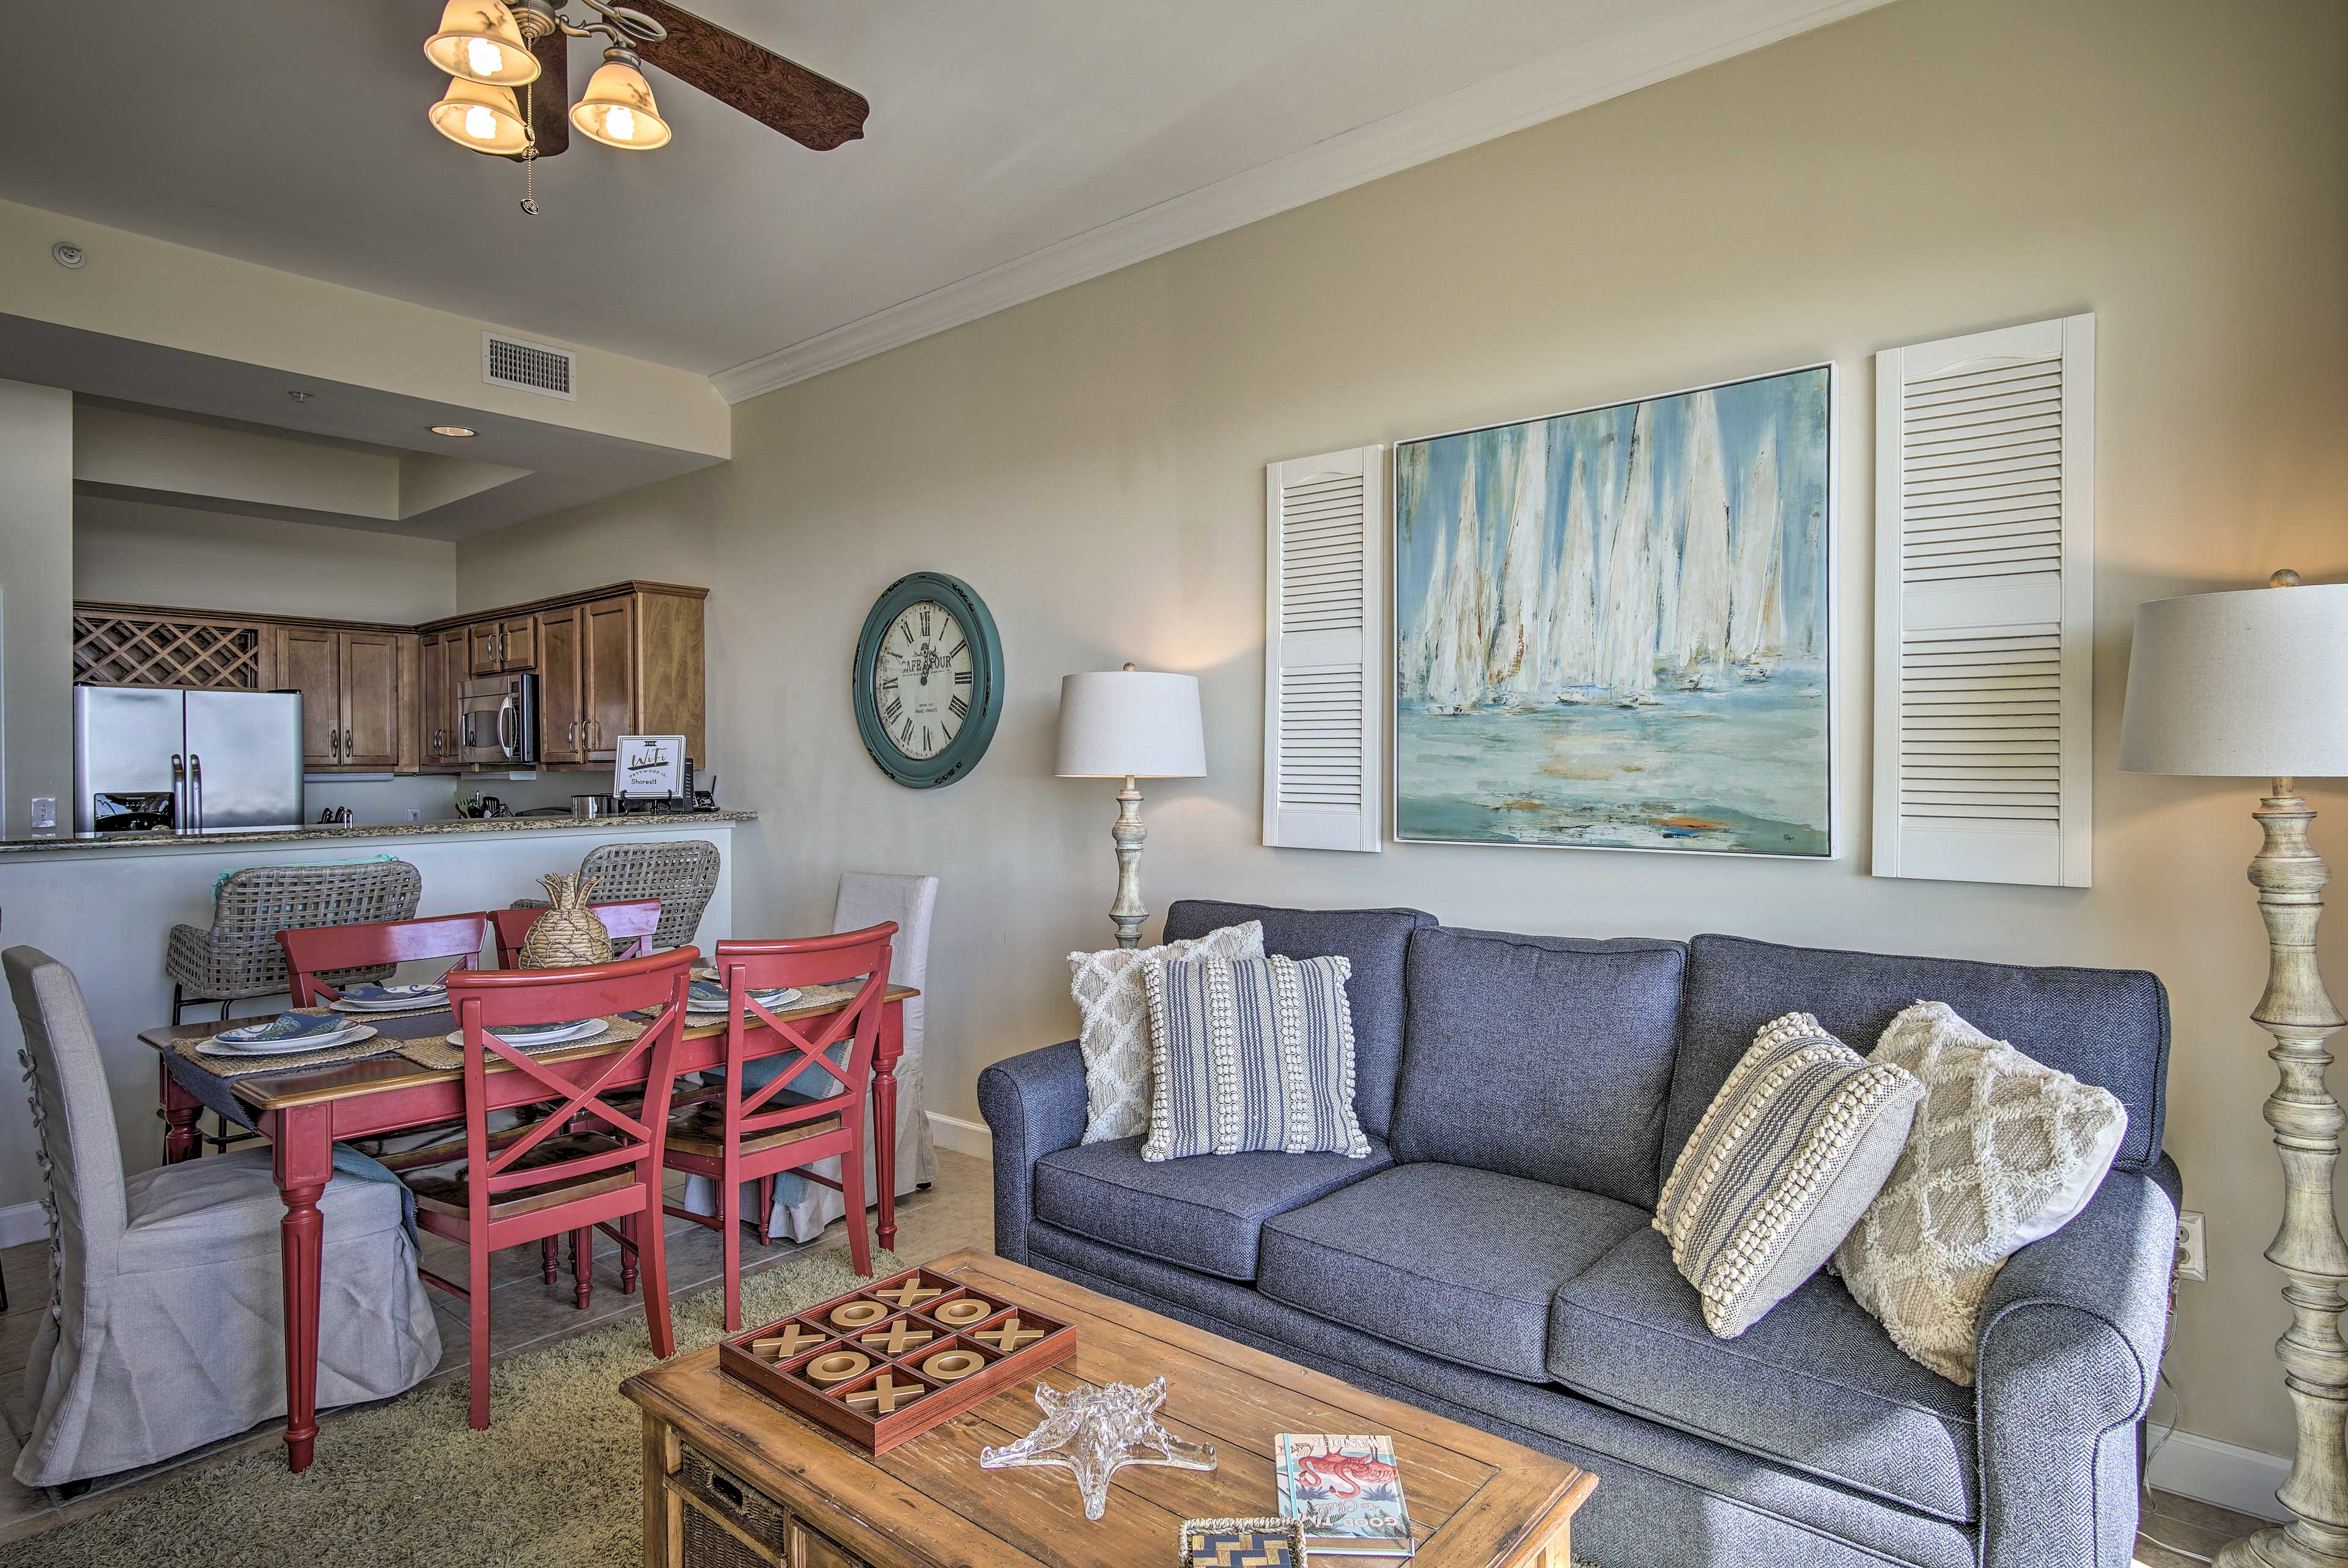 The condo has elegant decor and a soothing color scheme.